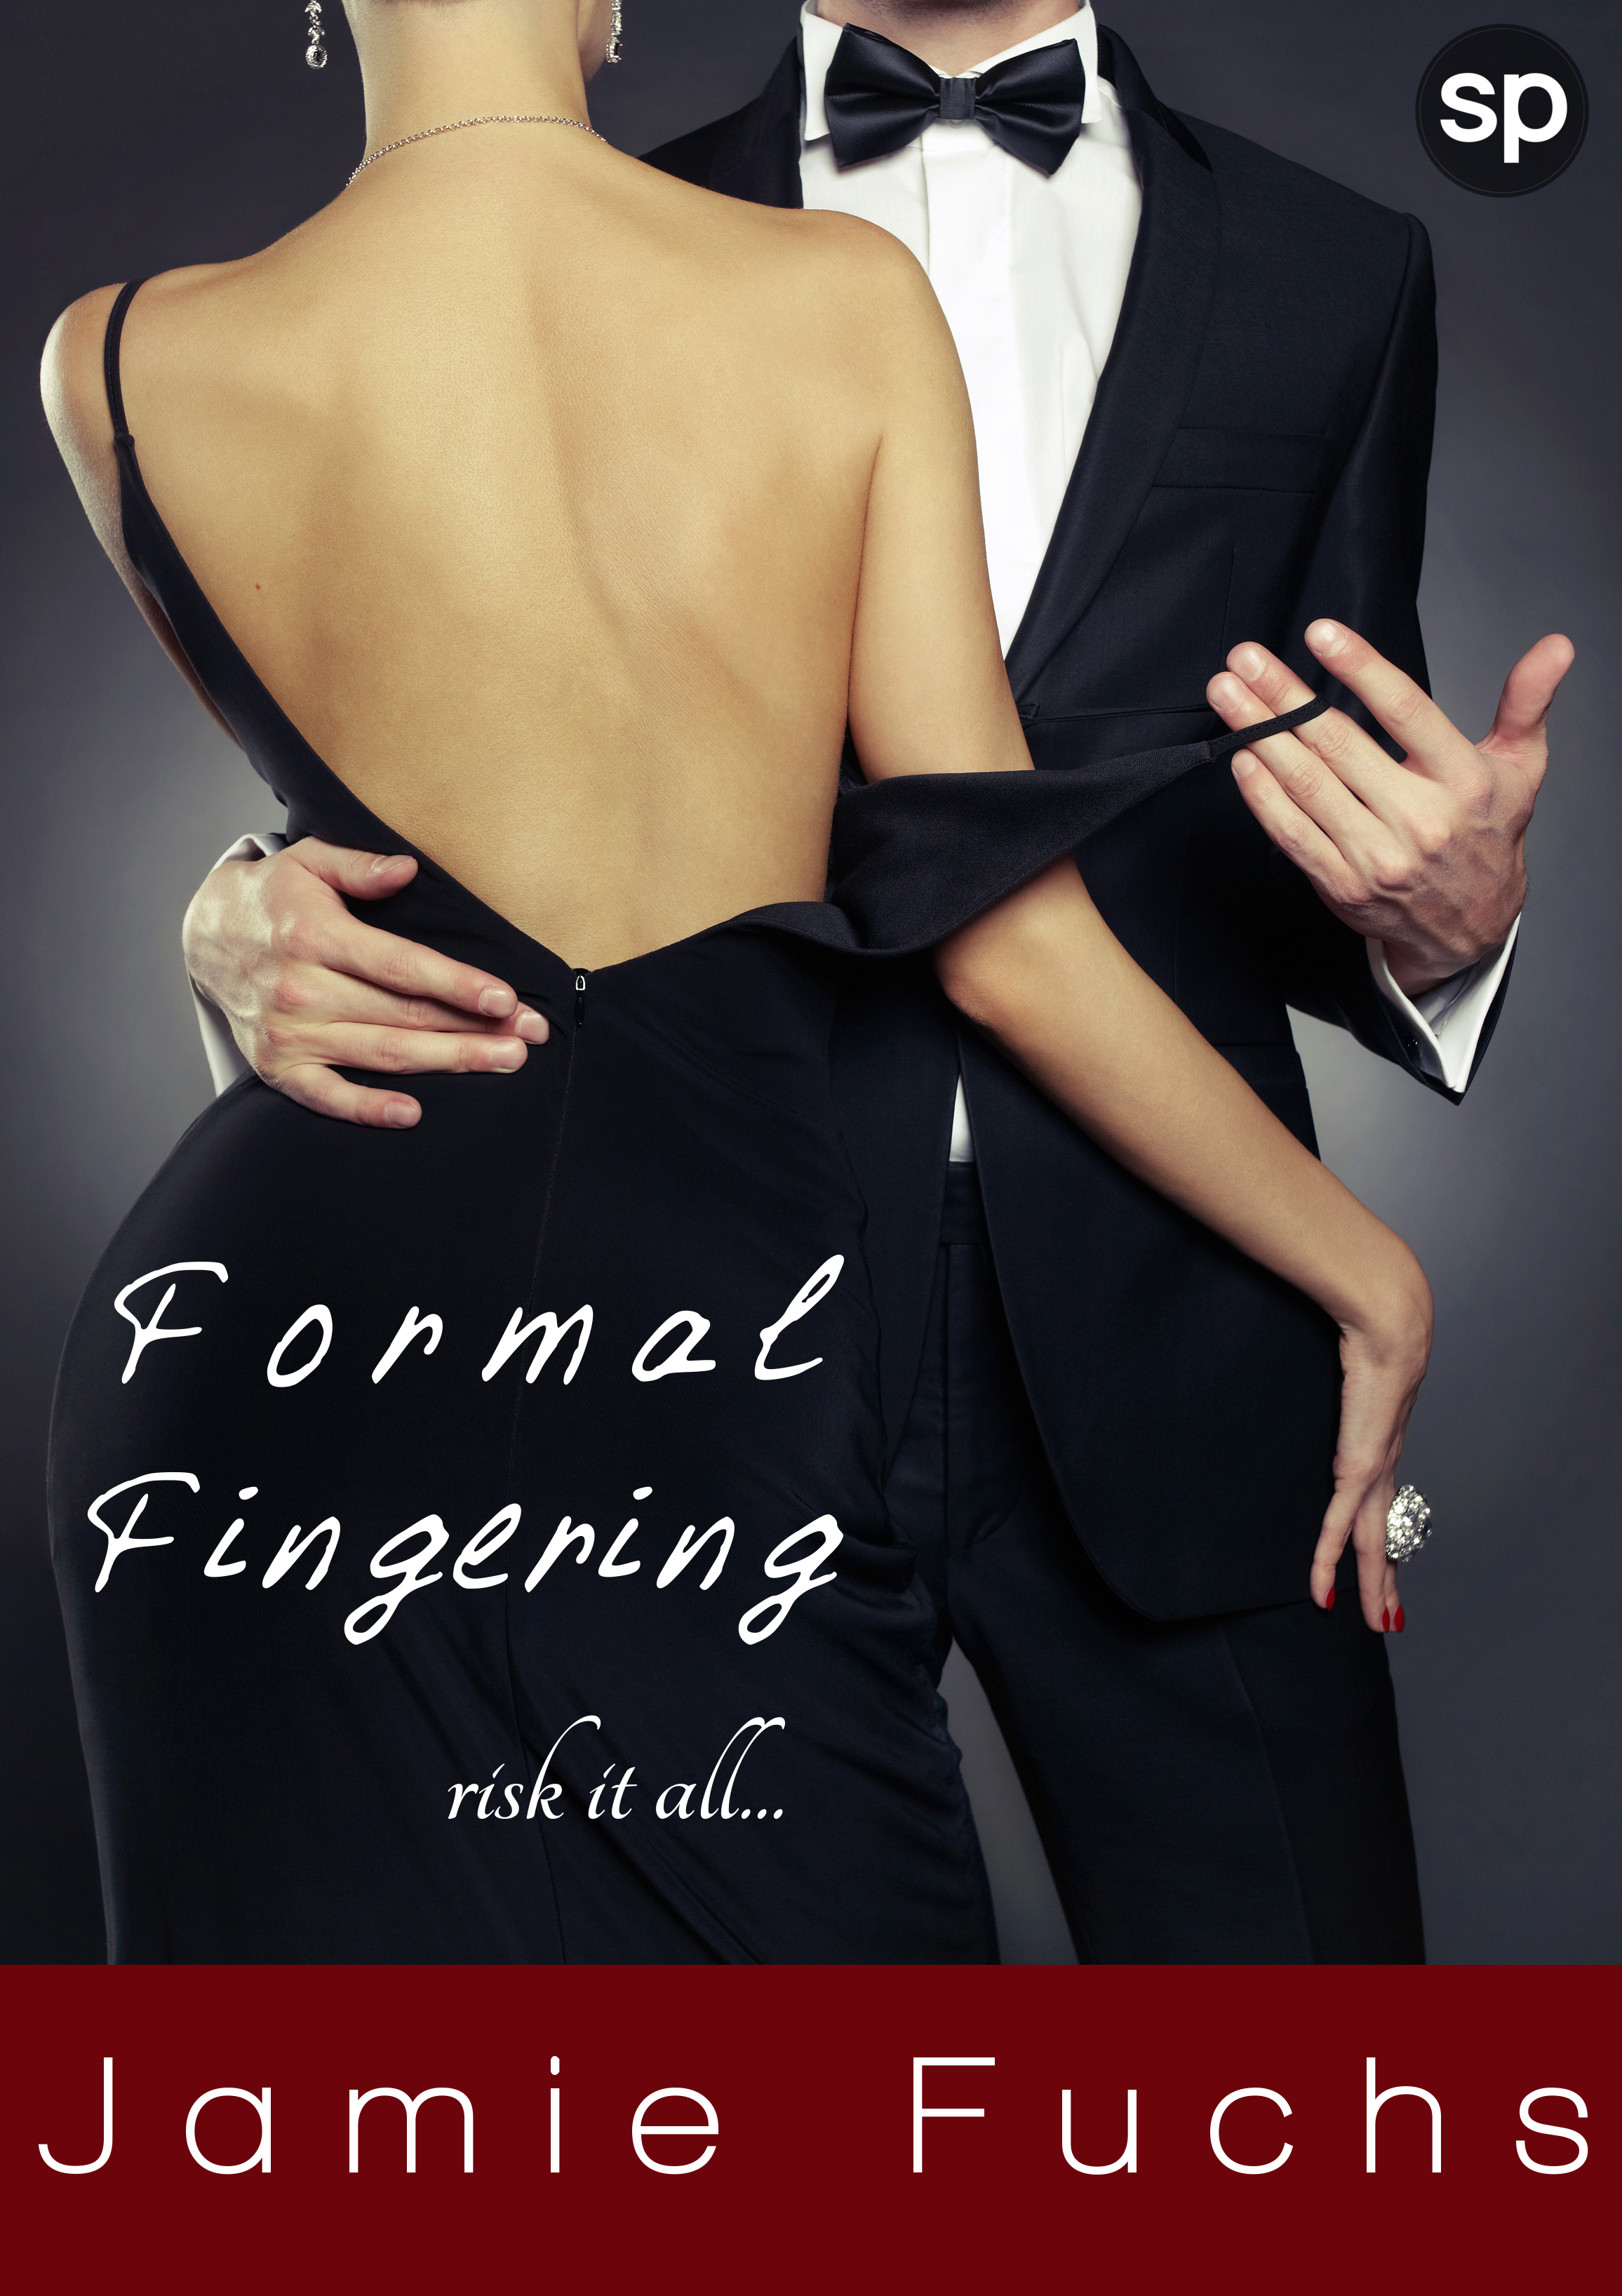 Jamie Fuchs - Formal Fingering - Risk It All